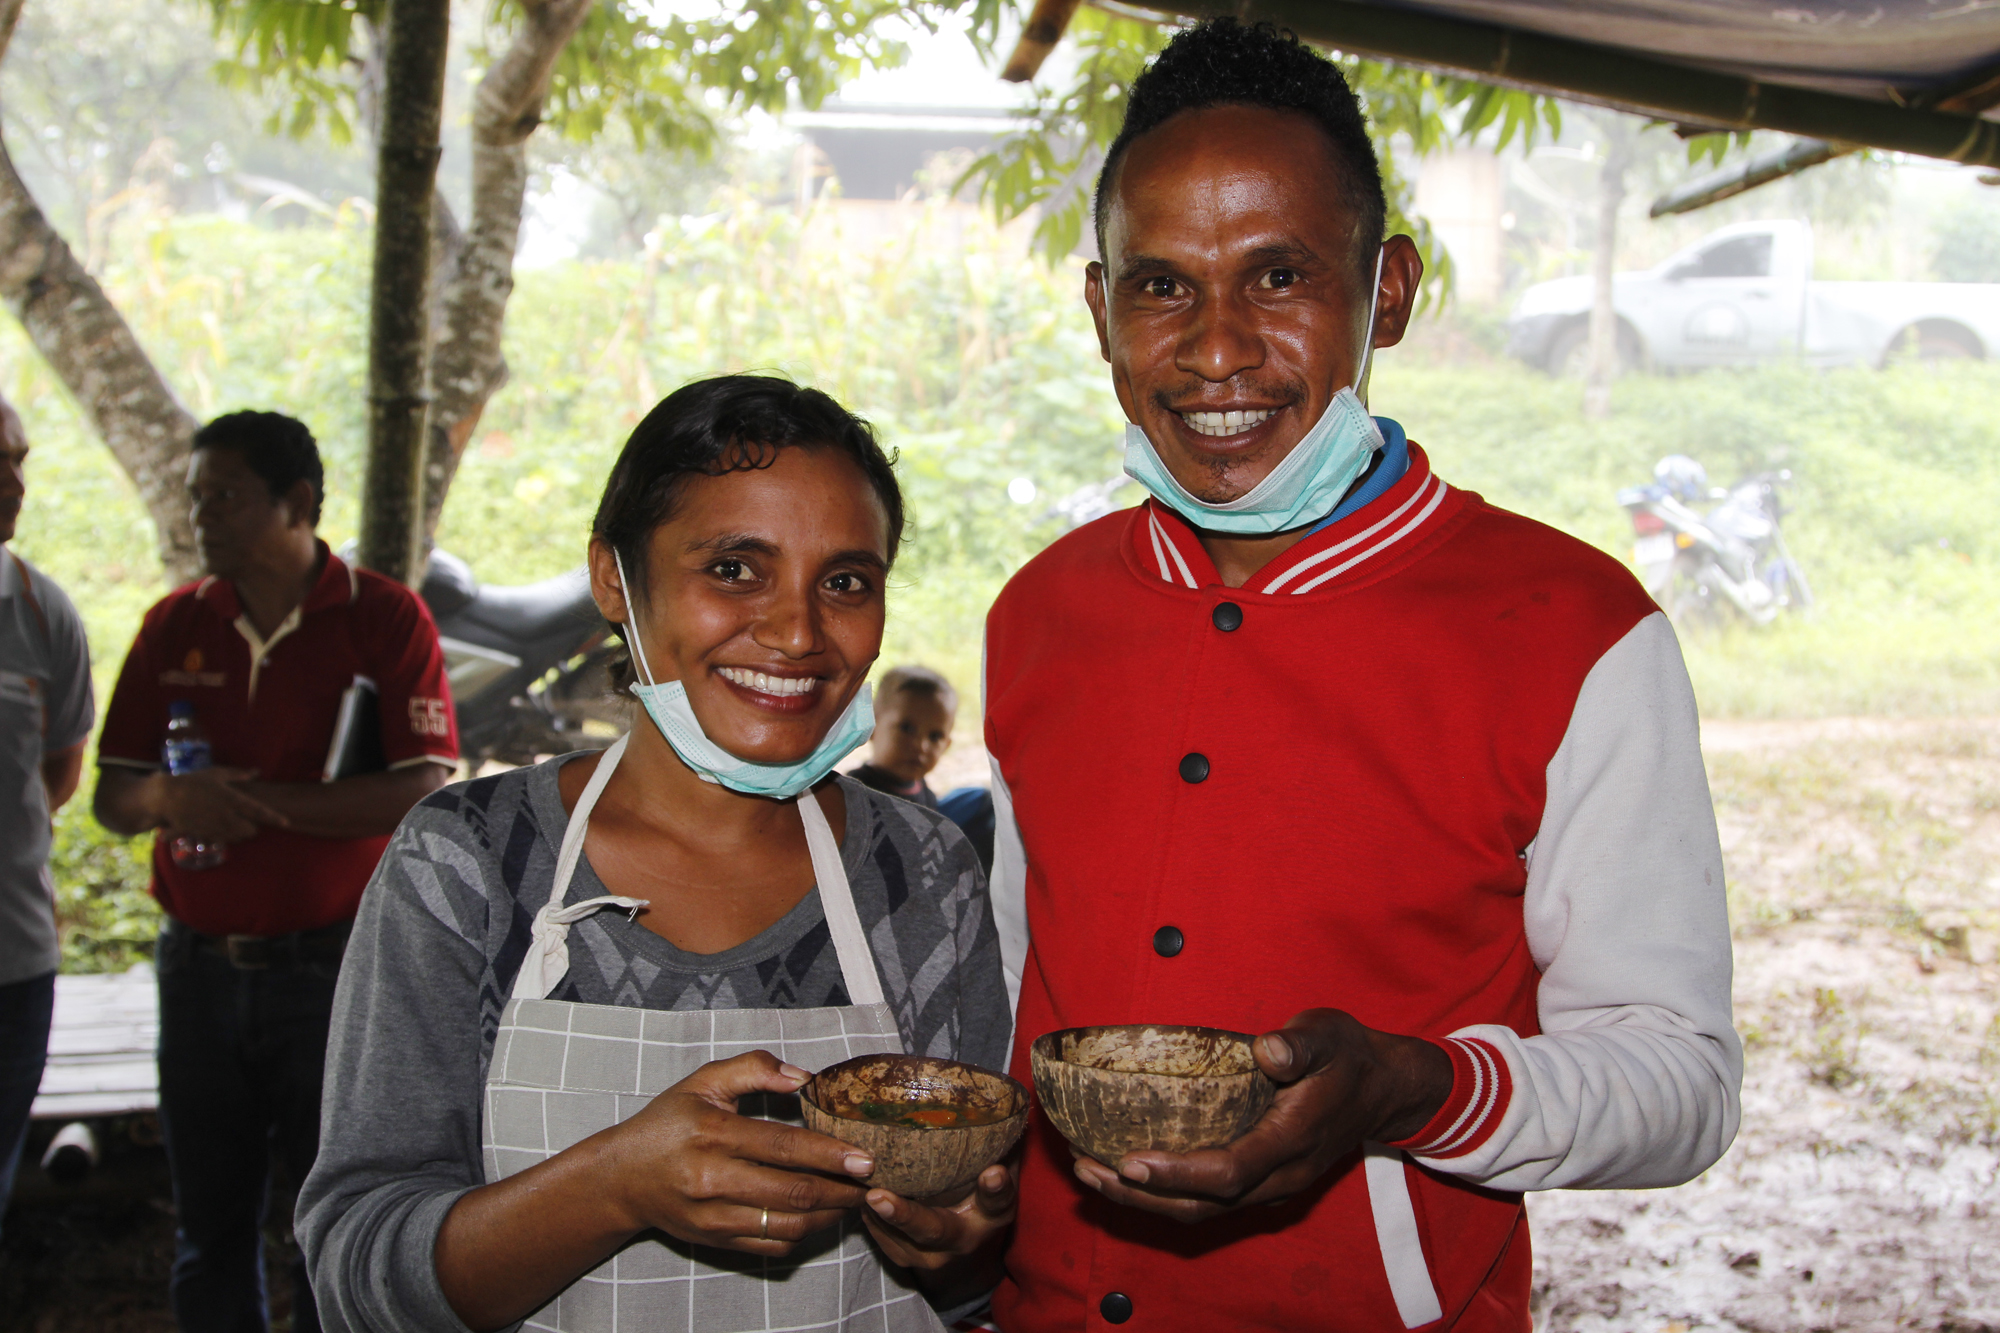 Jesuinha and Mariano prepared moringa soup for the cooking competition at Farmer Field Day. Photo: Jaime dos Reis/World Vision